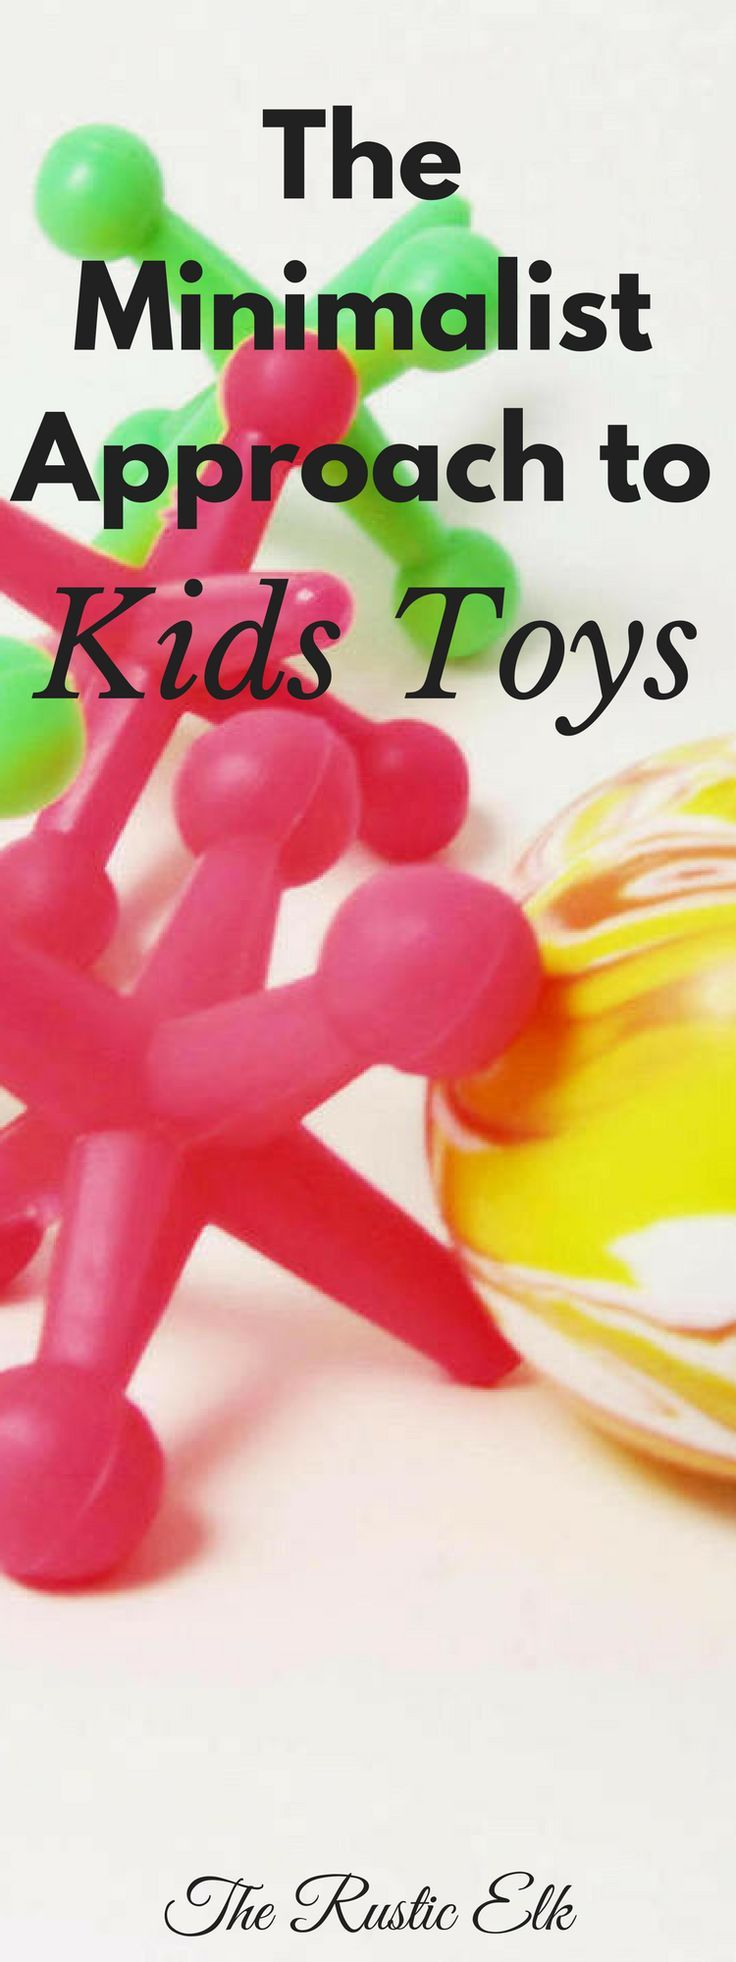 Are your kids lives full of clutter? Tired of picking up toys or yelling to get your kids to pick up? Try this minimalist approach to their toys and live a happier, less stressed life!